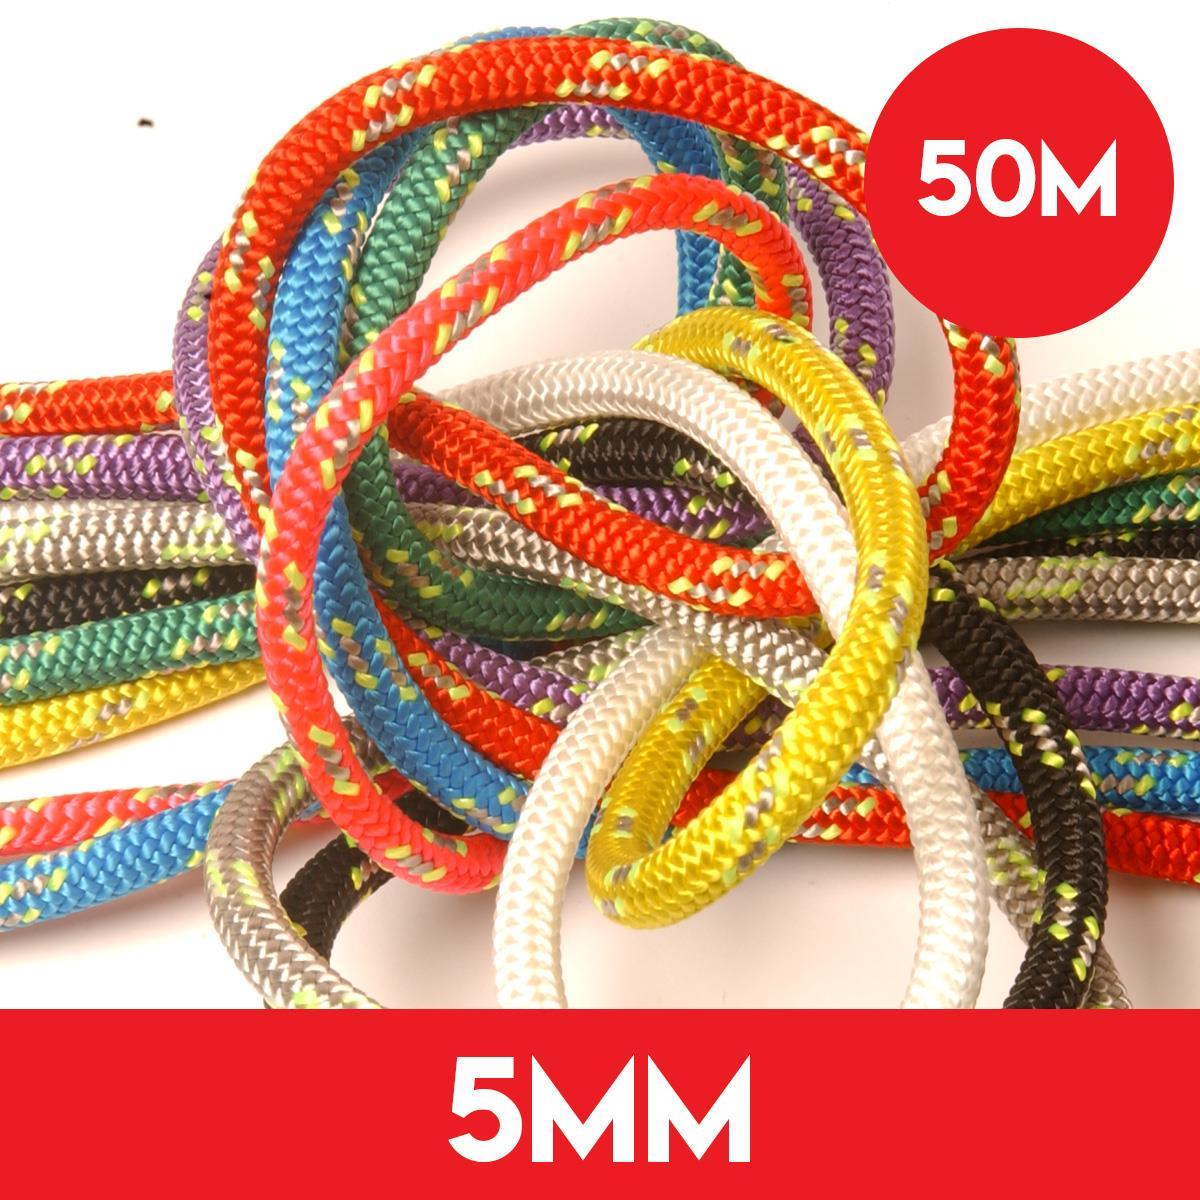 50m Reel of 5mm Dyneema Kingfisher Evolution Race Rope